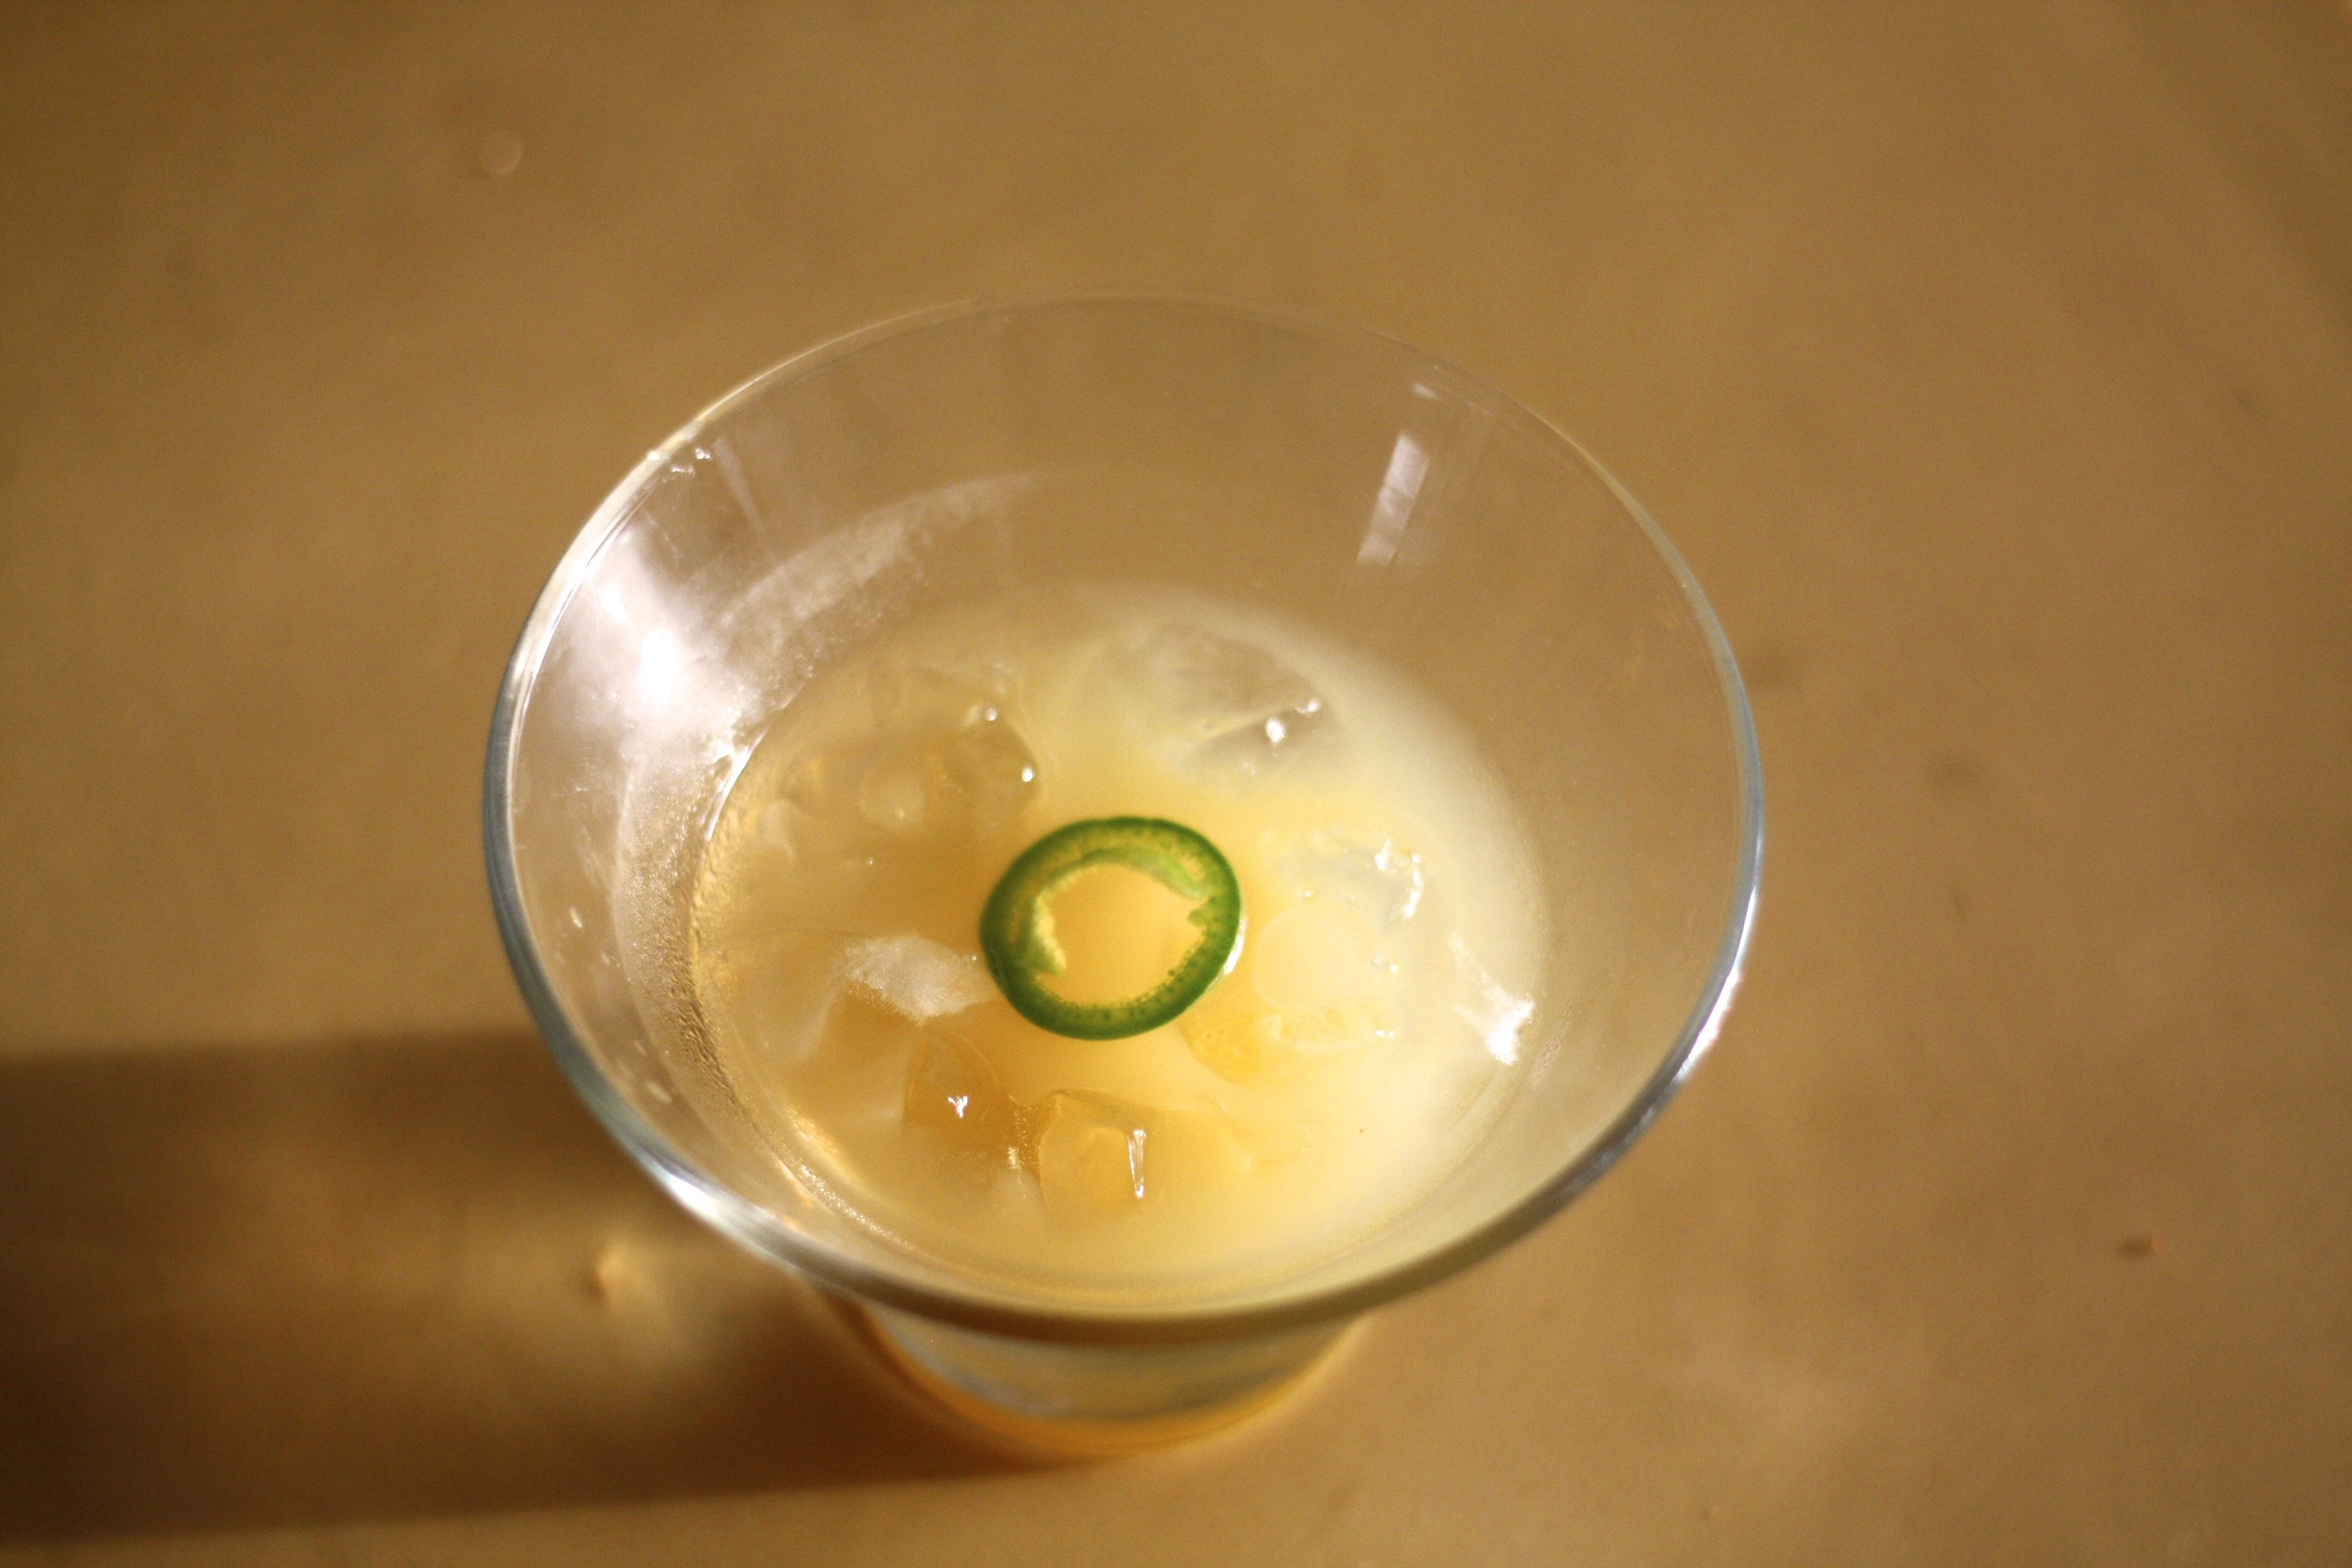 The-pig-and-the-fig-punta-mita-the-cocktail-tequila-lime-coconut-jalapeno